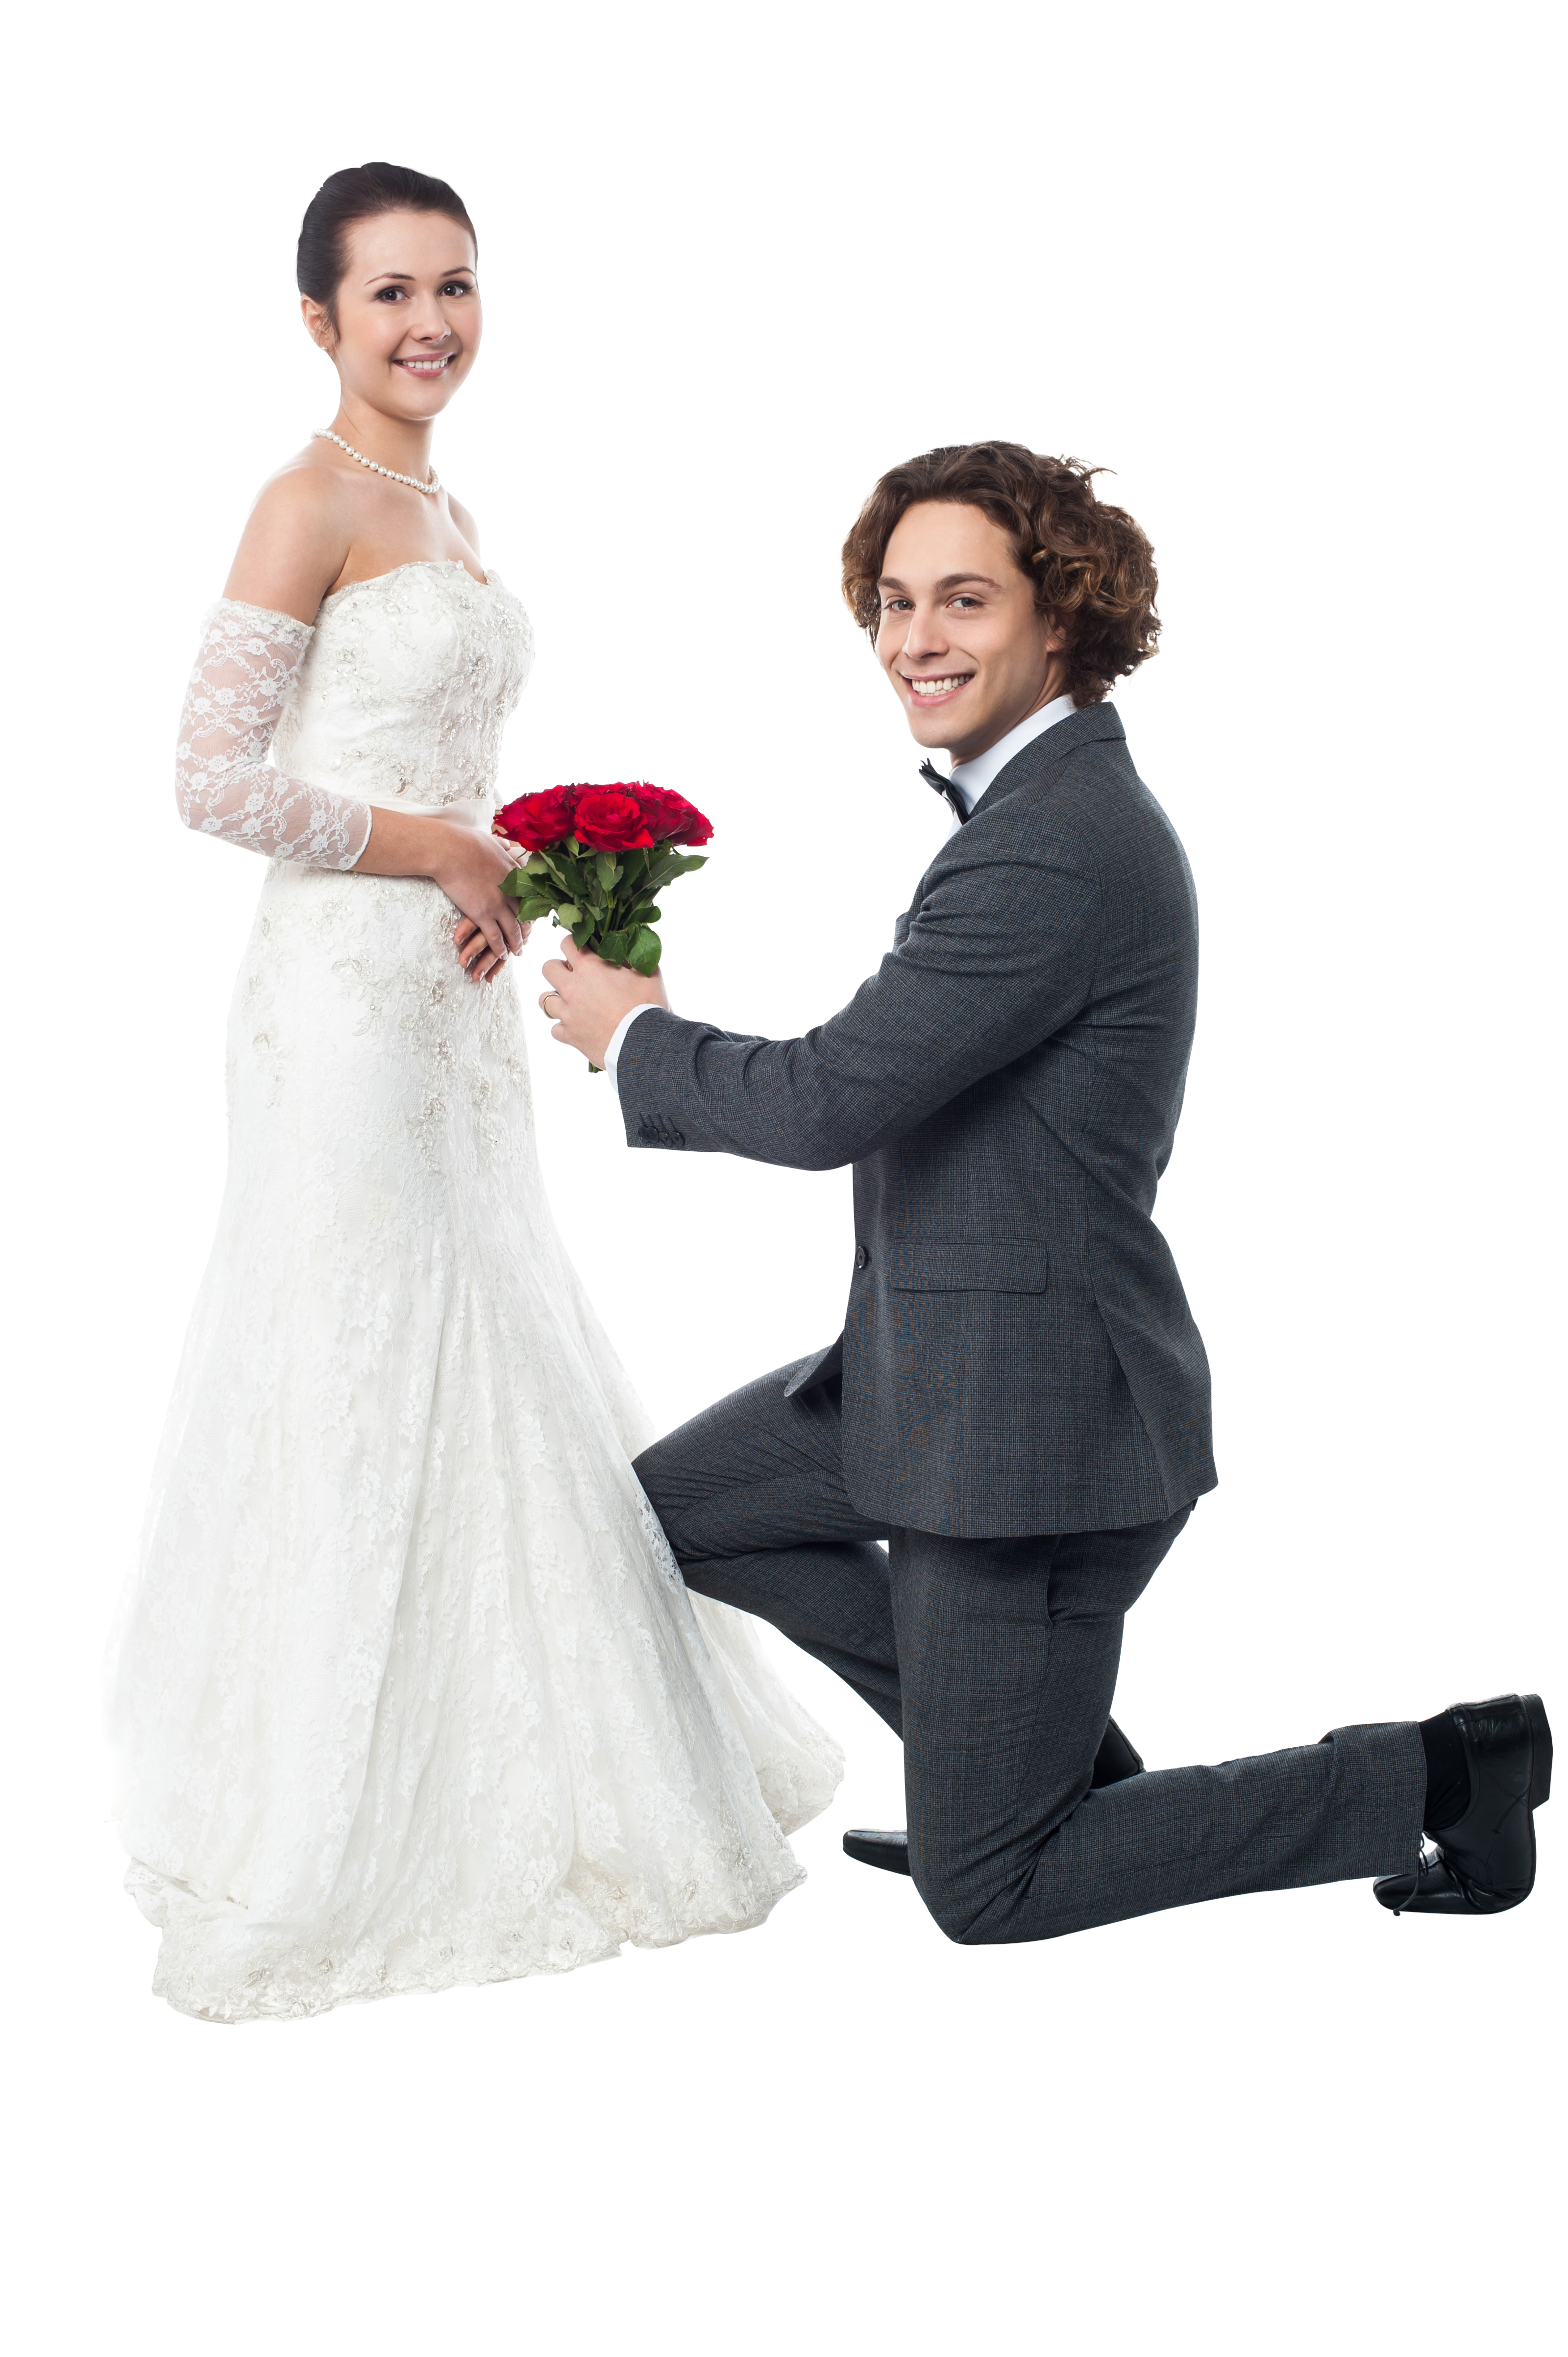 Married couple png. Wedding image purepng free